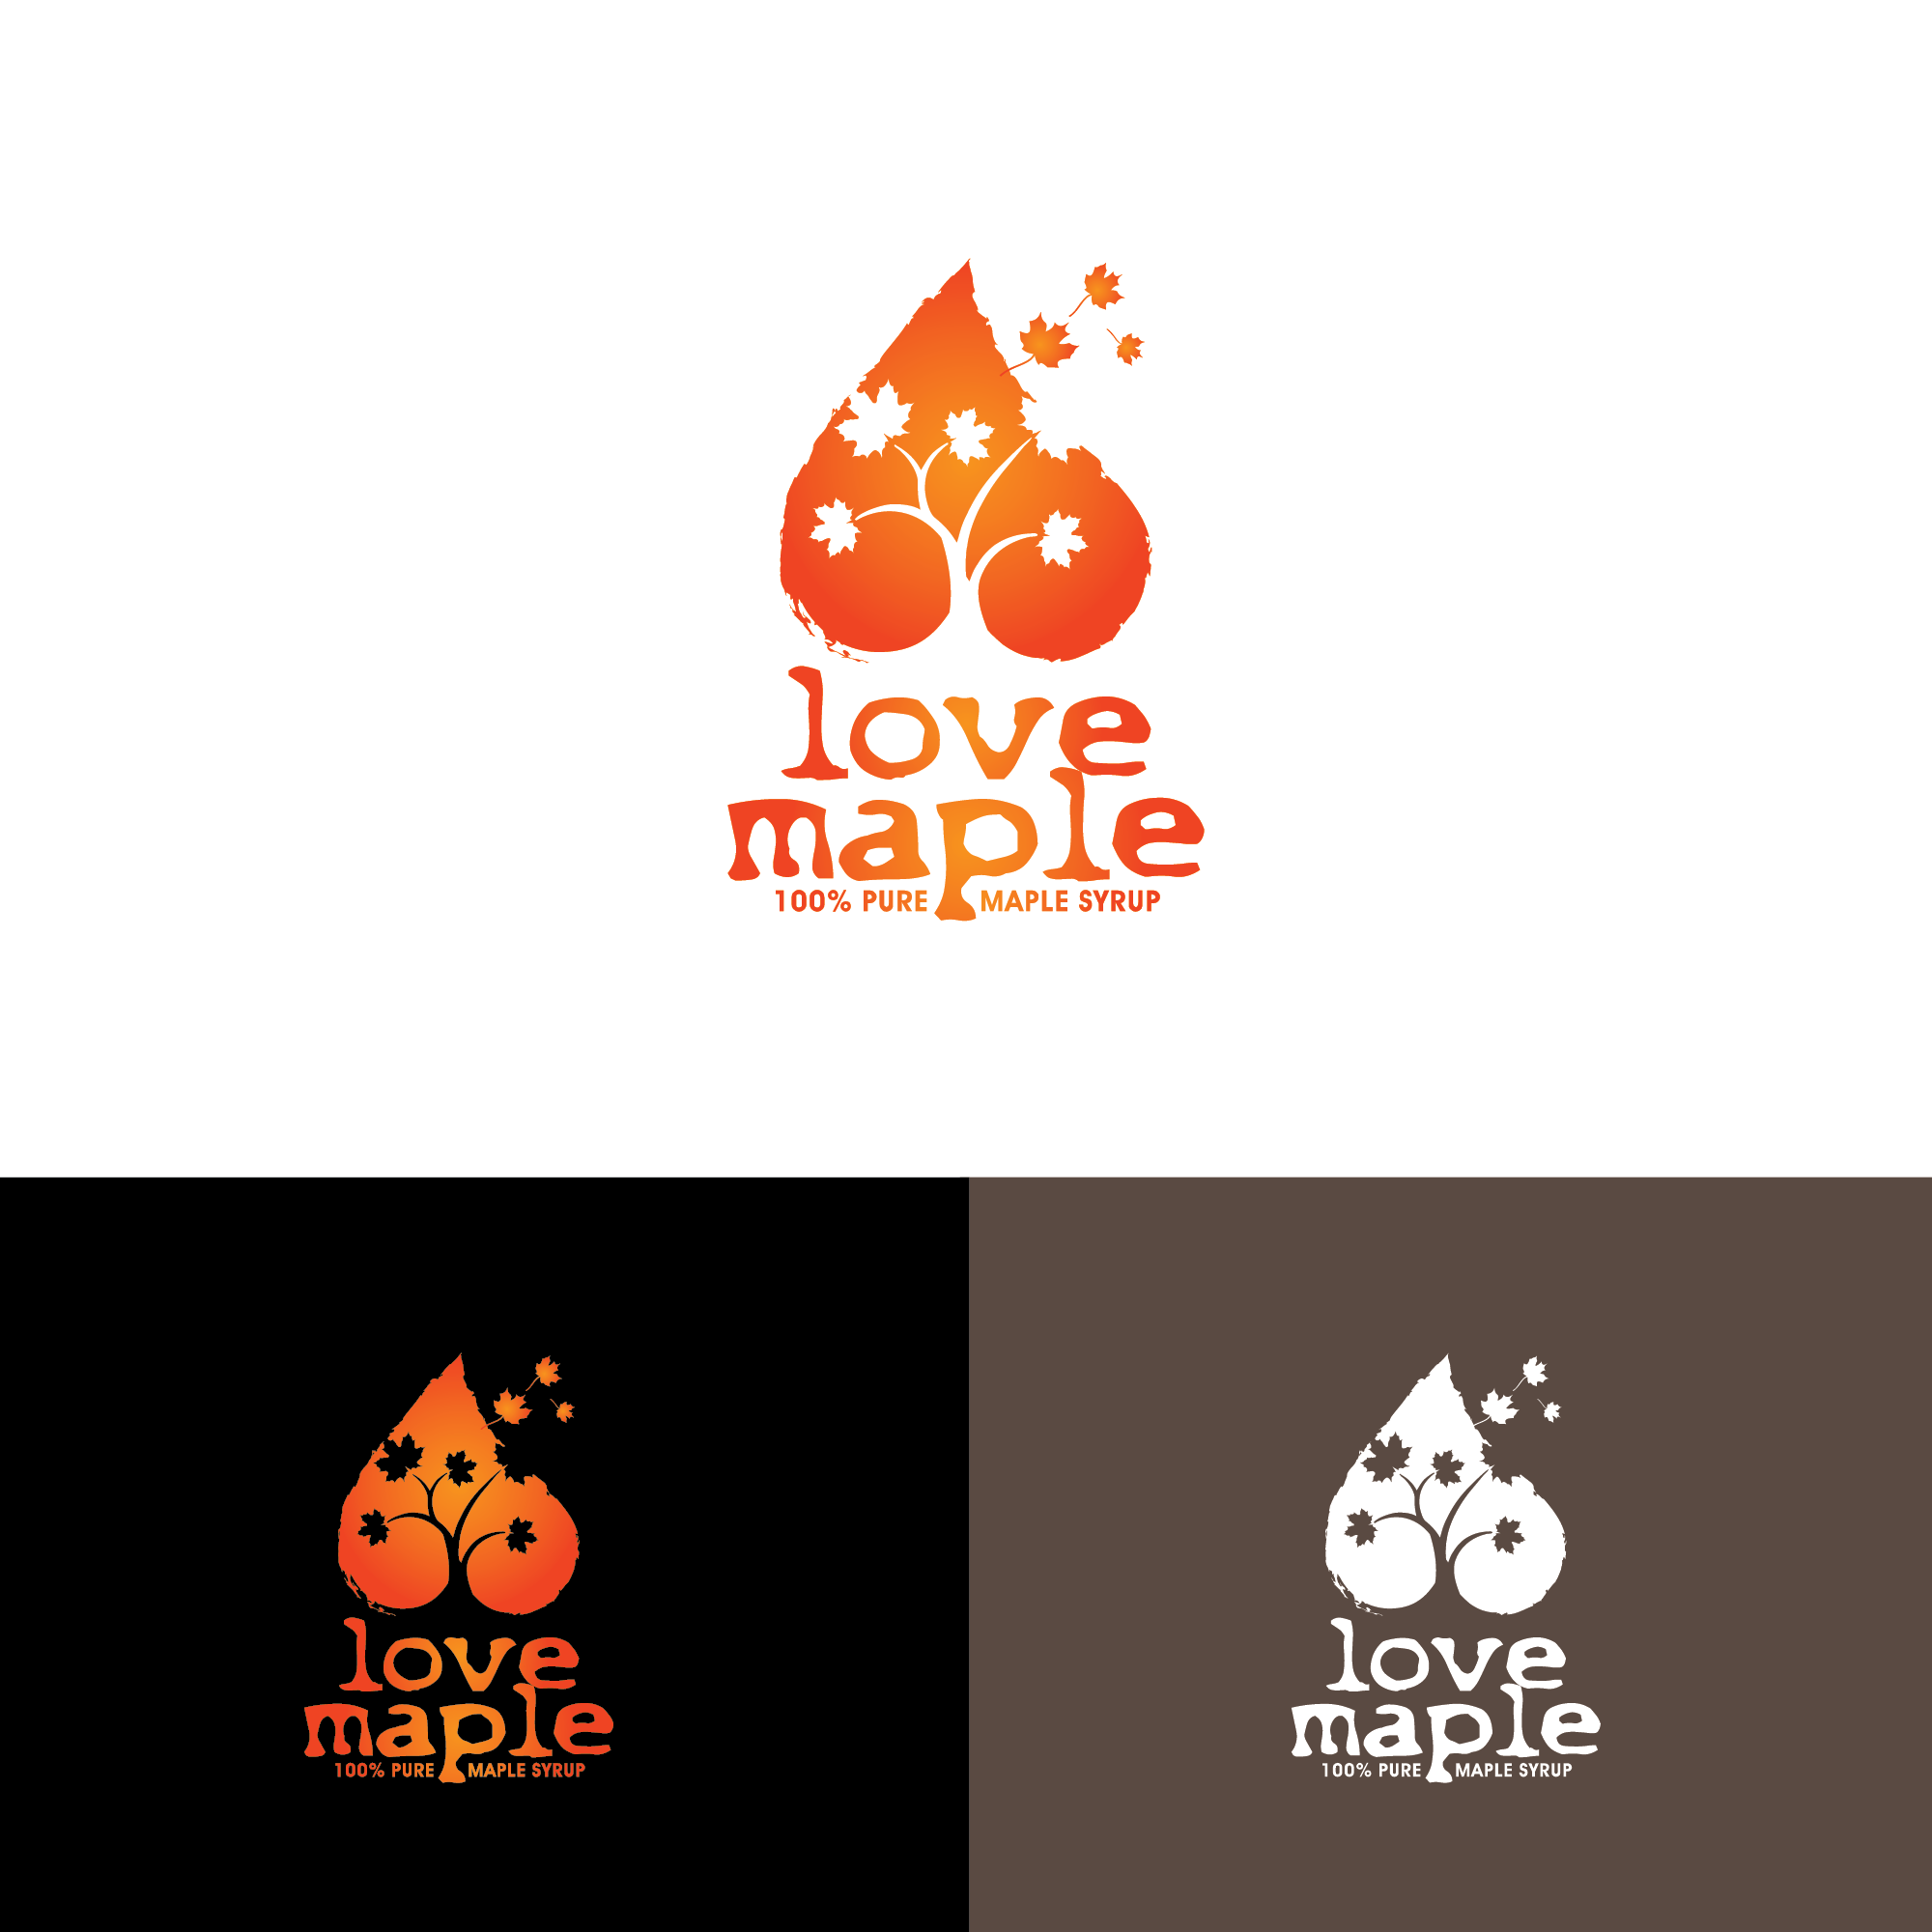 creating a logo for a new maple syrup company called Love Maple